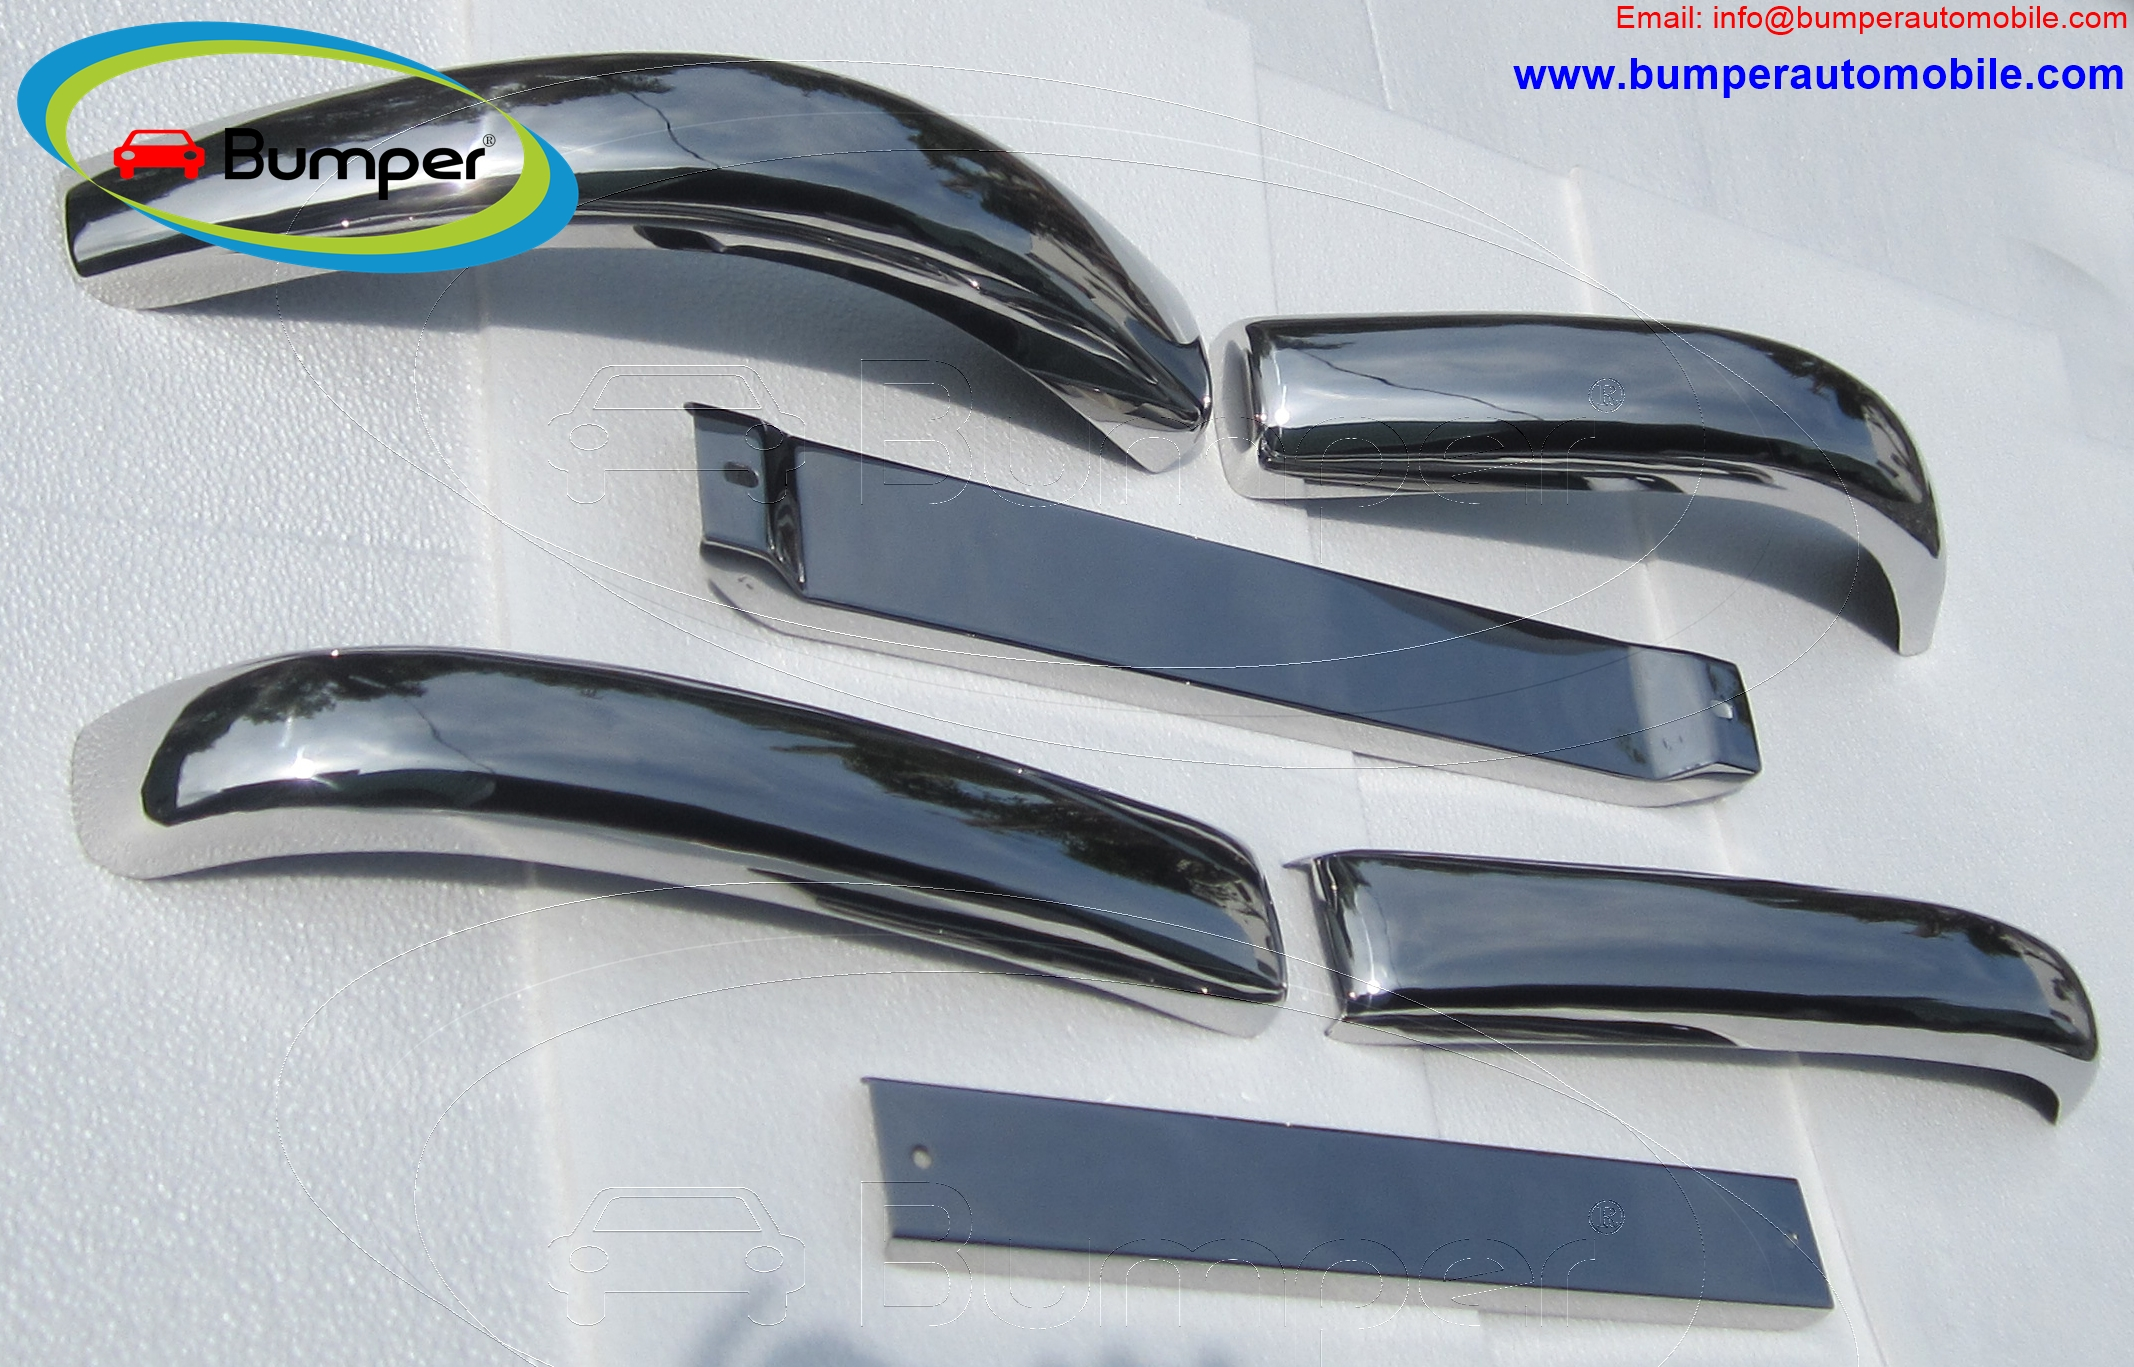 Mercedes W136 170 Vb bumper (1952–1953) full set